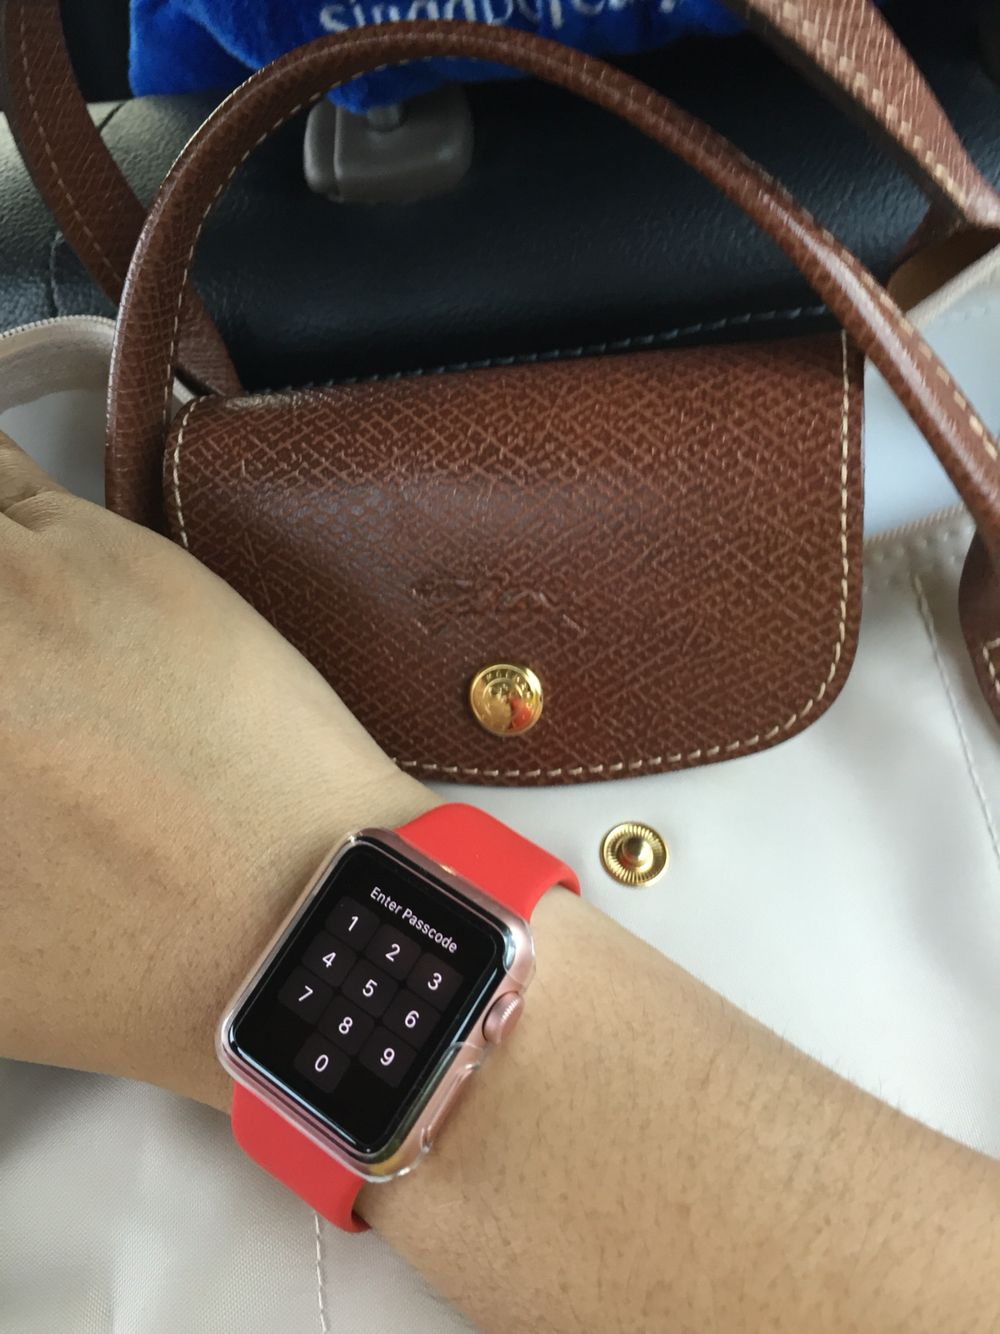 Apple Watch 38mm Using Additional Red Strap With Rose Gold Apple Watch Rose Gold Apple Watch Rose Gold Red Apple Watch